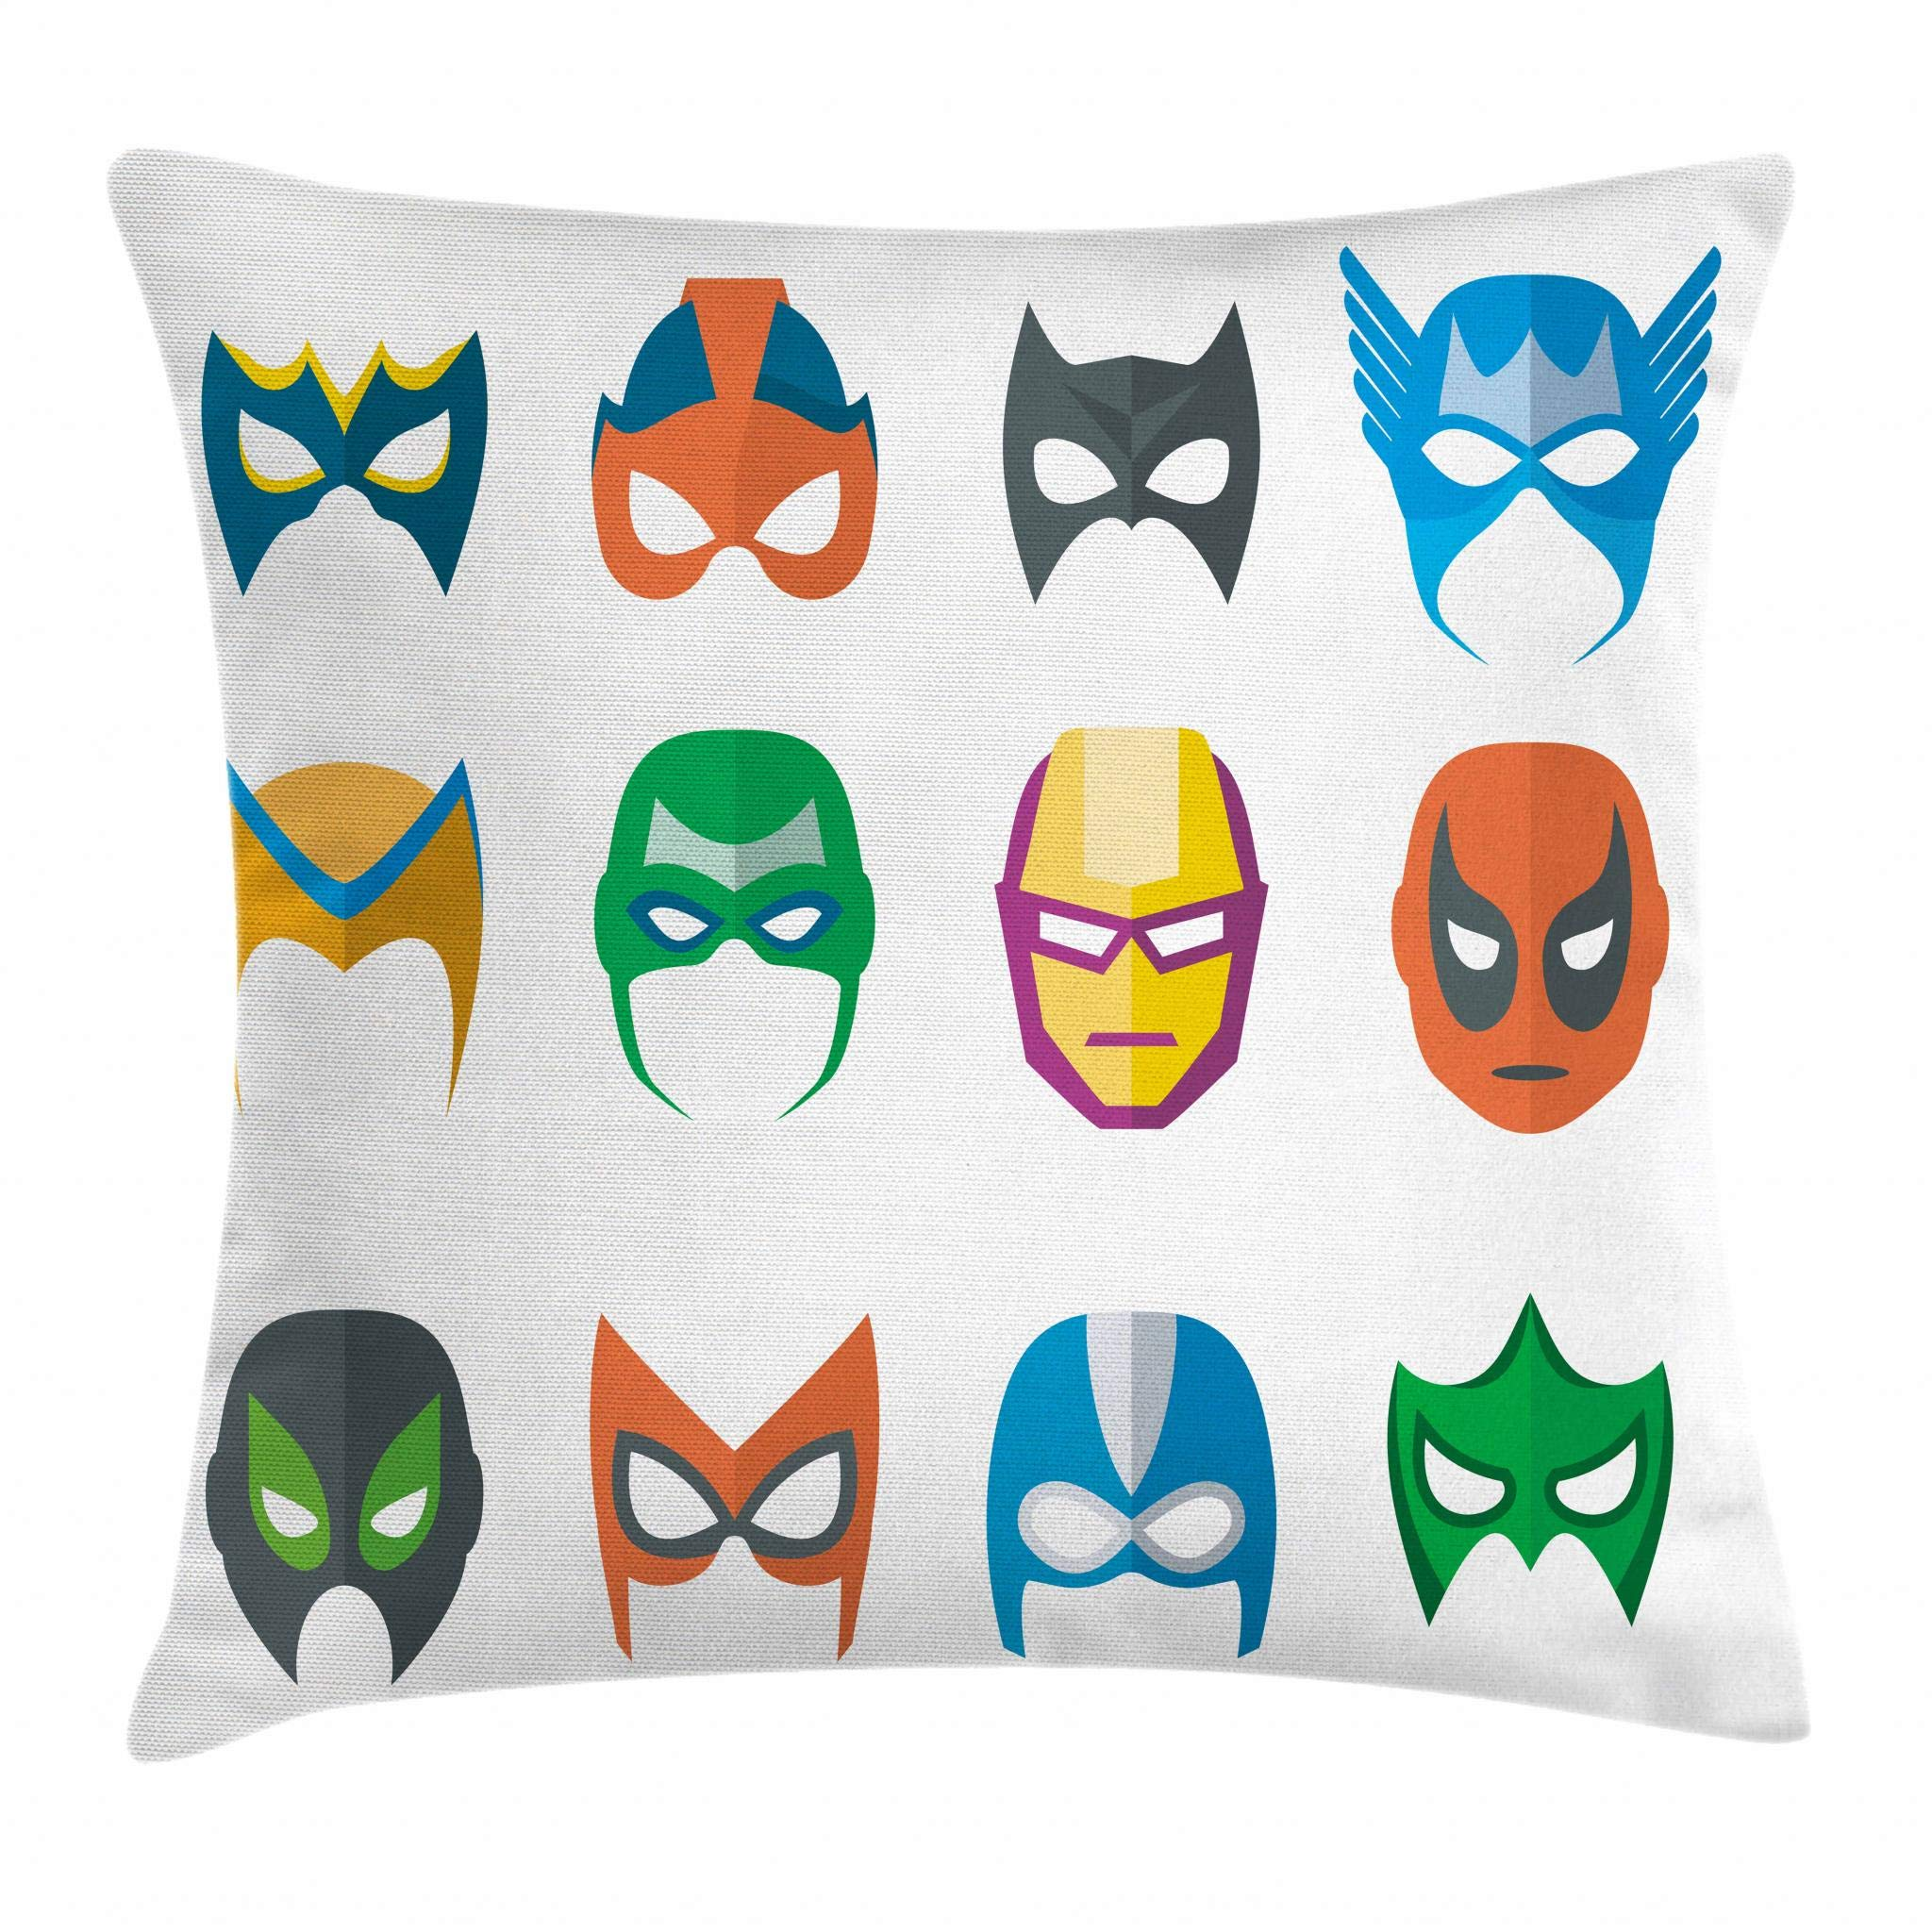 Ambesonne Superhero Throw Pillow Cushion Cover, Hero Mask Female Male Costume Power Justice People Fashion Icons Kids Display, Decorative Square Accent Pillow Case, 18 X 18 Inches, Multicolor